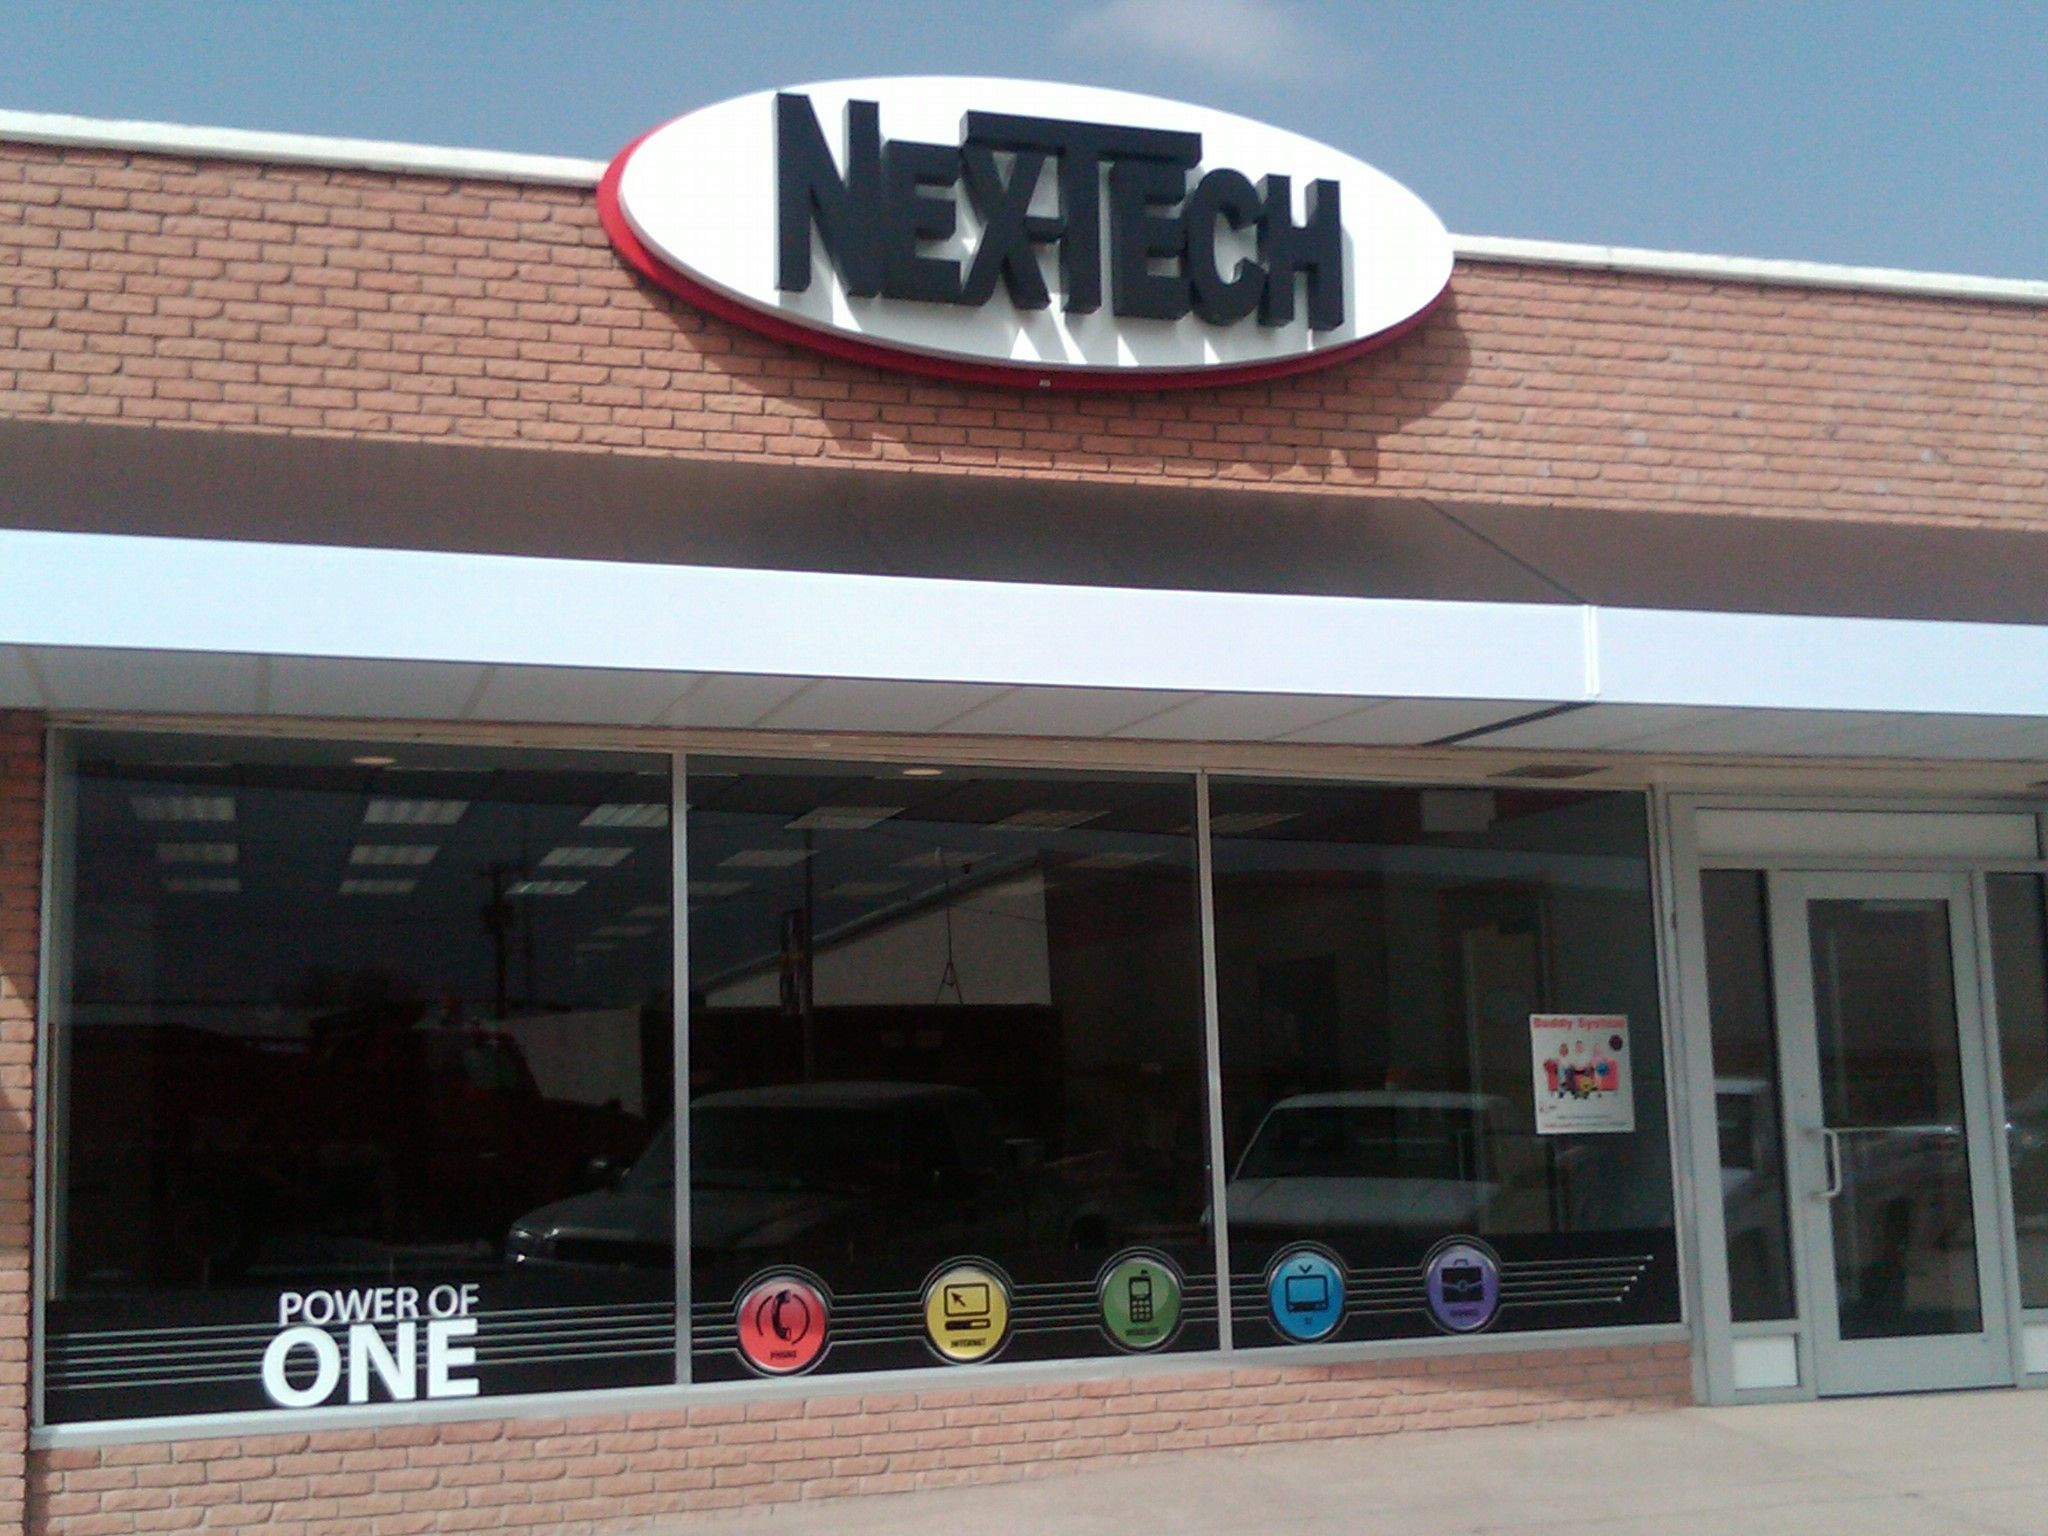 NexTech in Hoxie, KS. Places, Favorite places, Locations